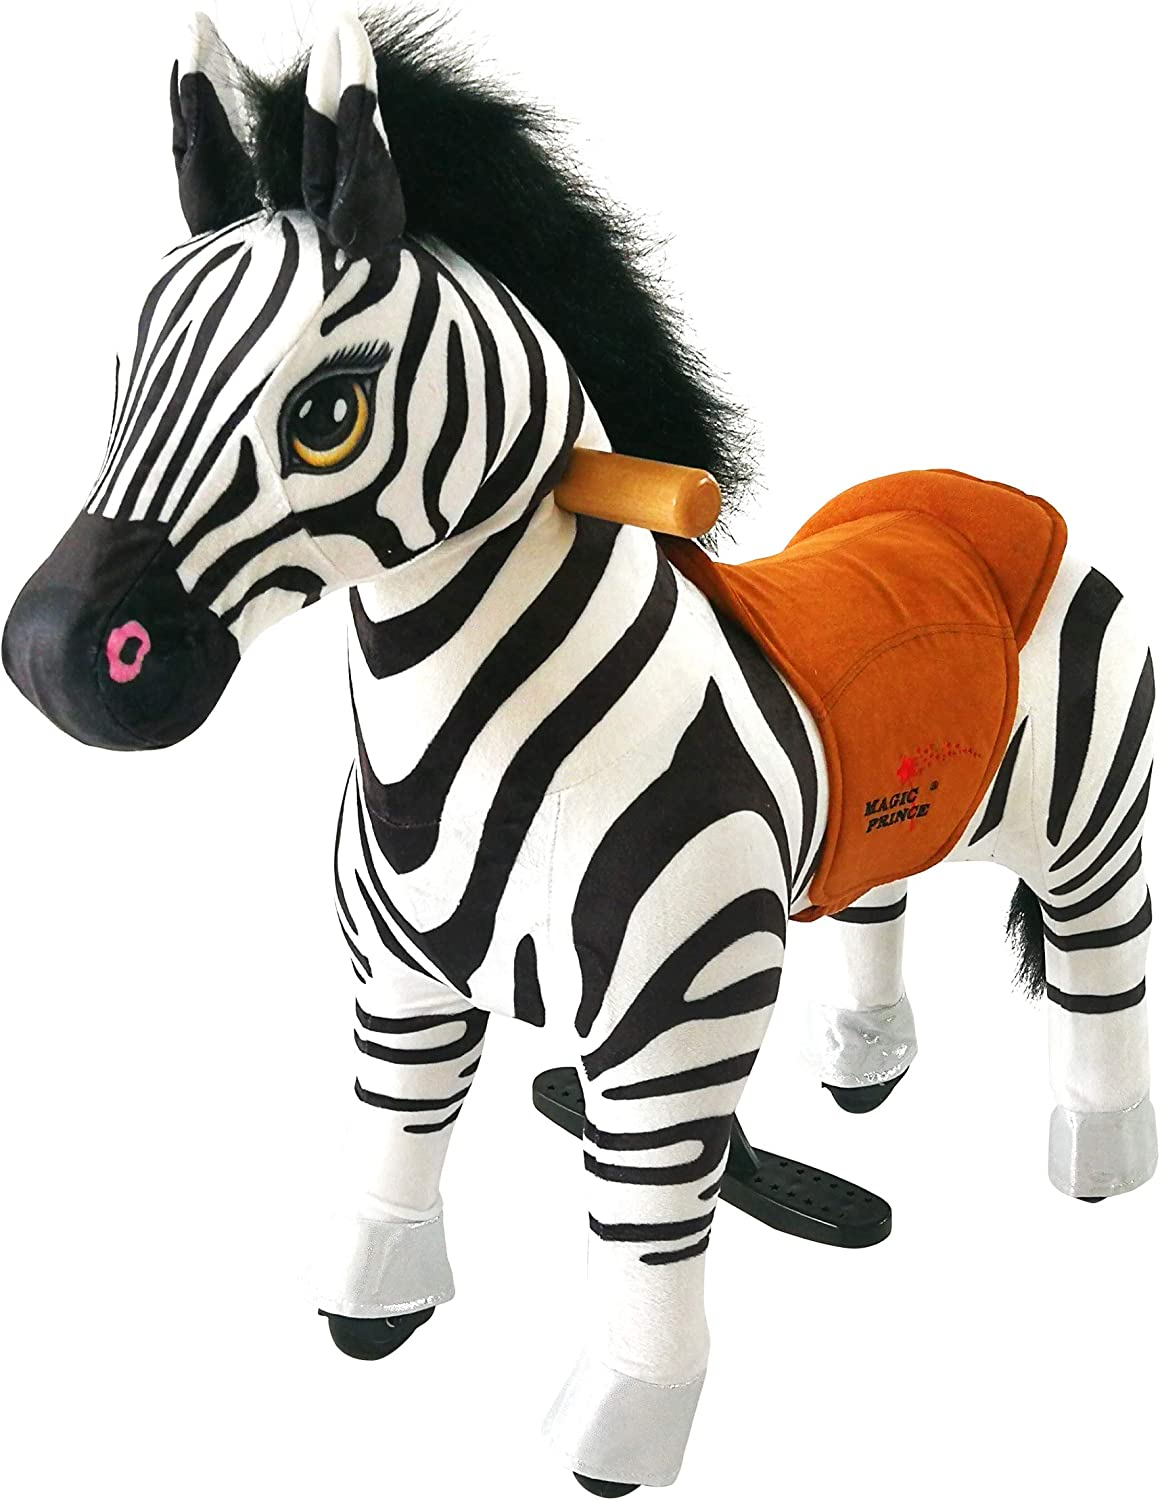 Mofawangzi SaddleLess Rocking Rocking Rocking Ride on Mini Zebra